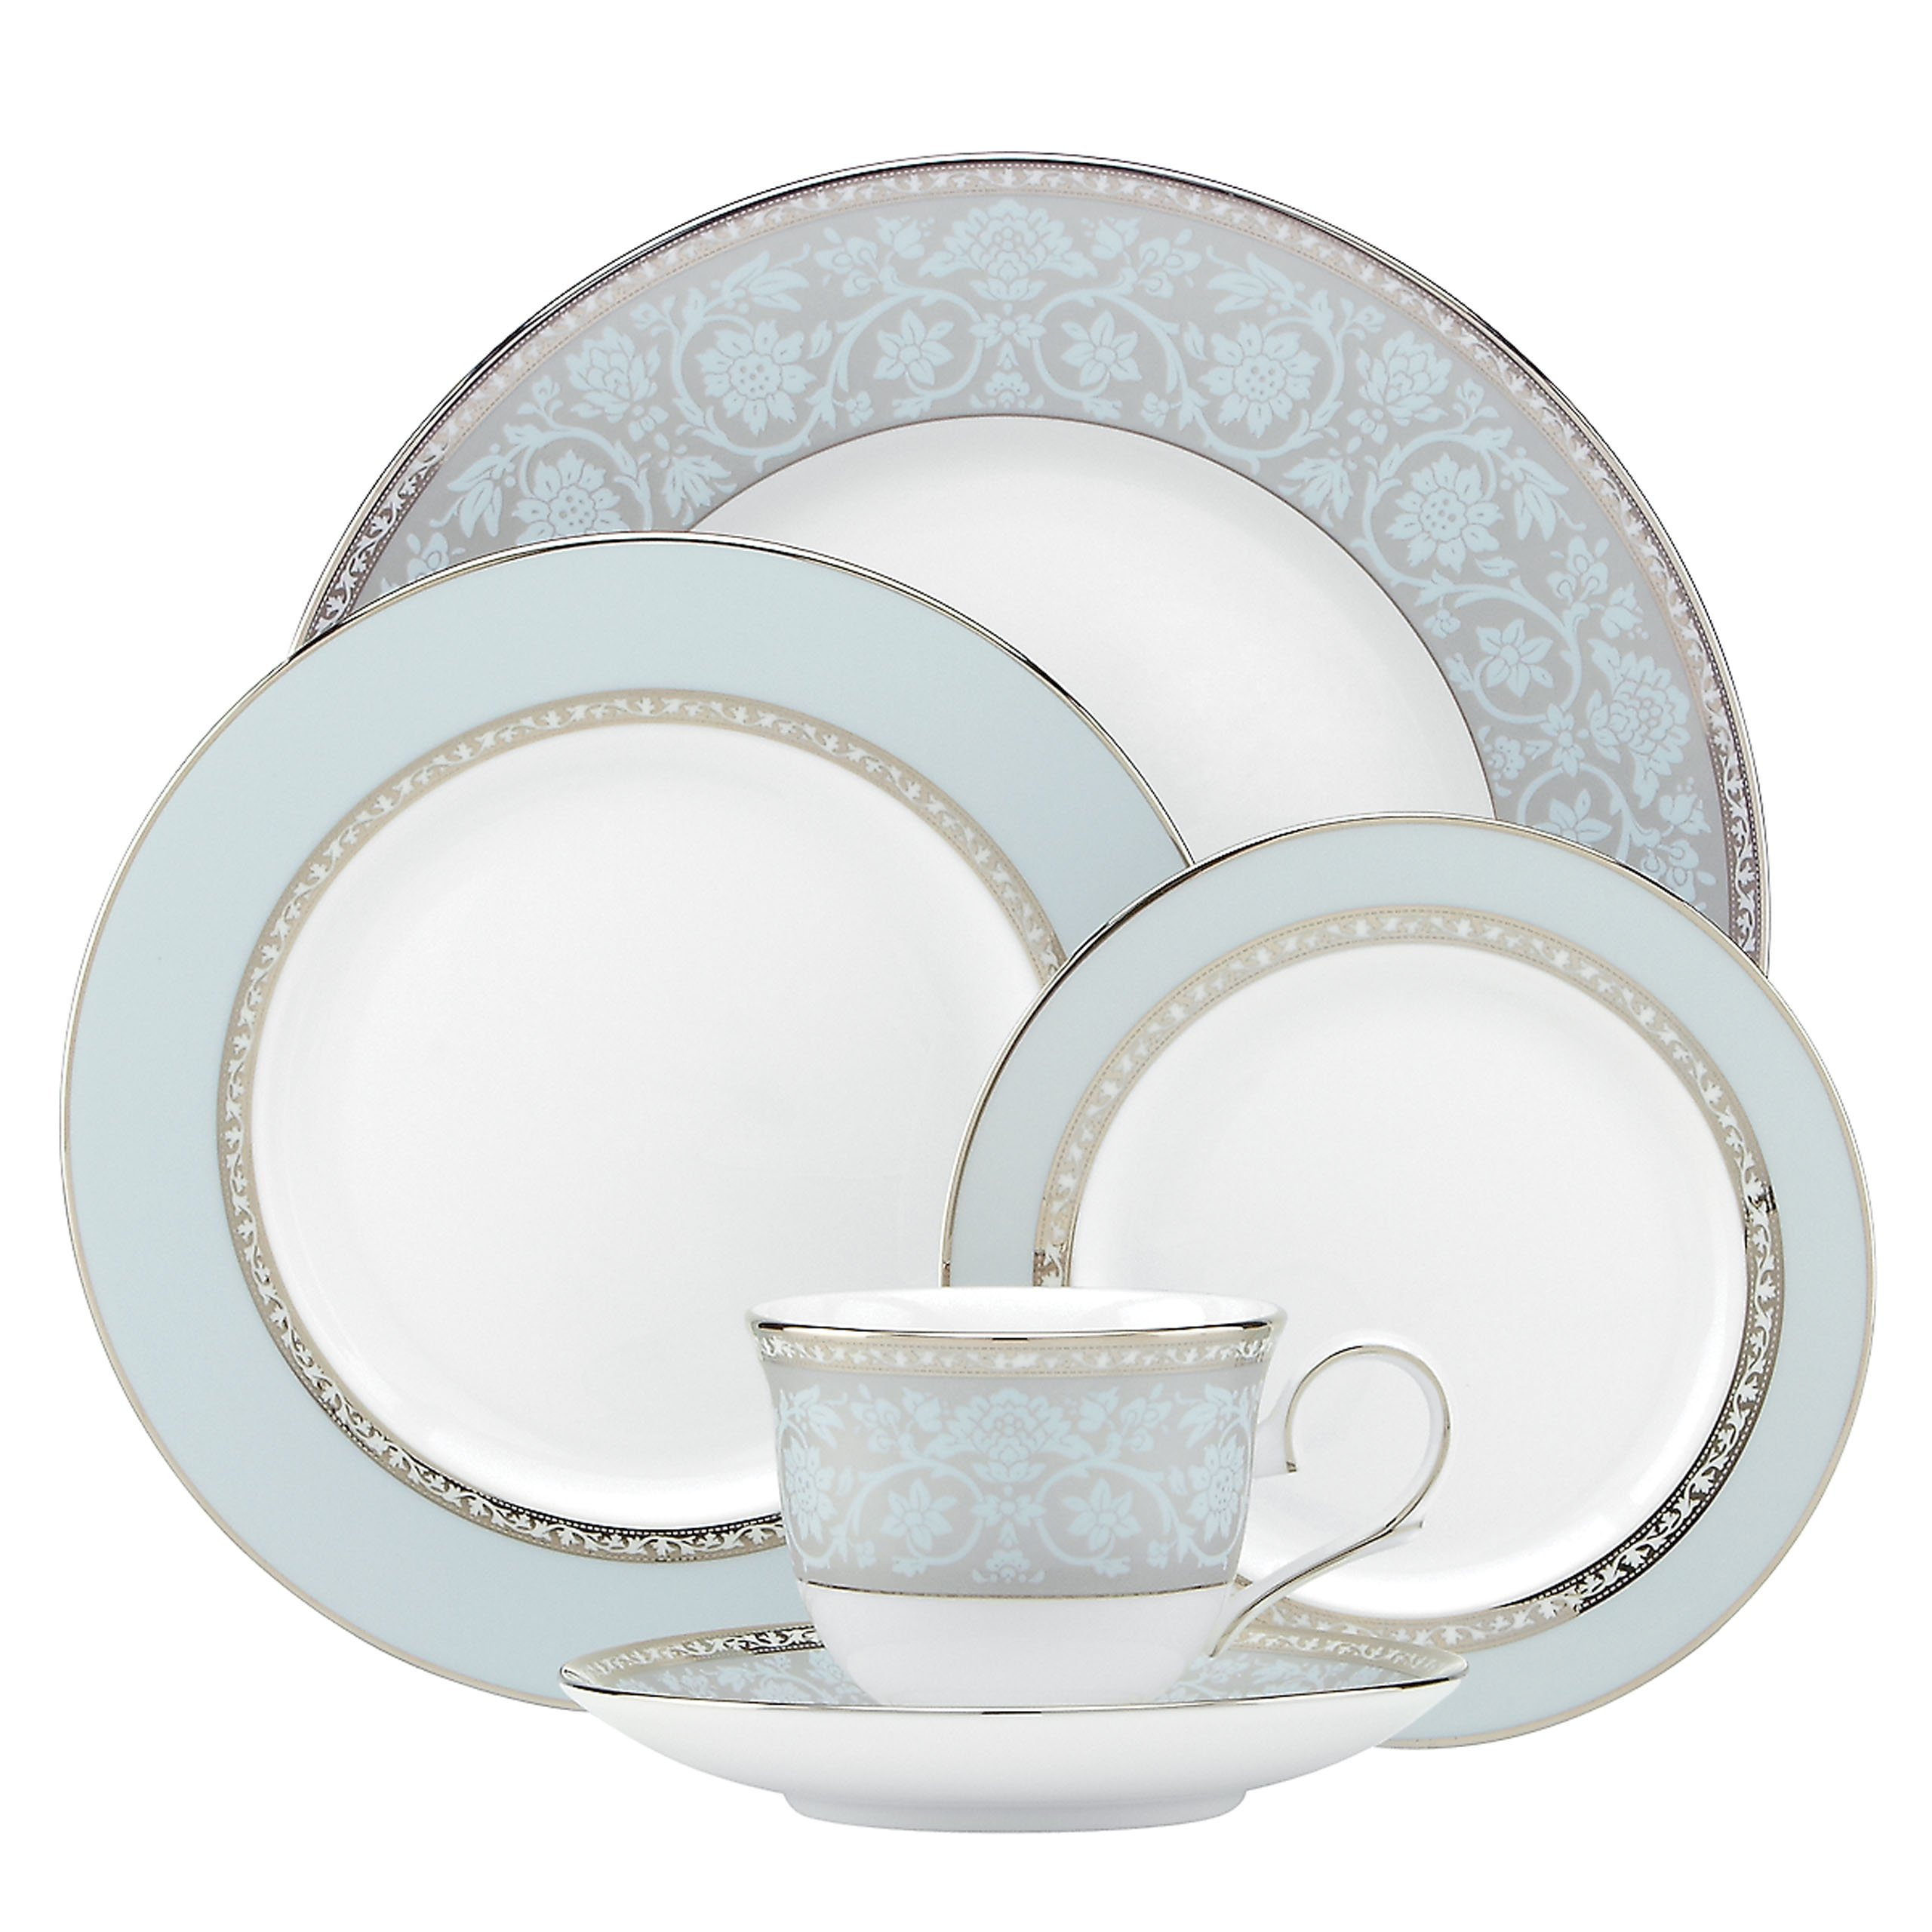 Lenox Westmore 5 Piece Place Setting 8